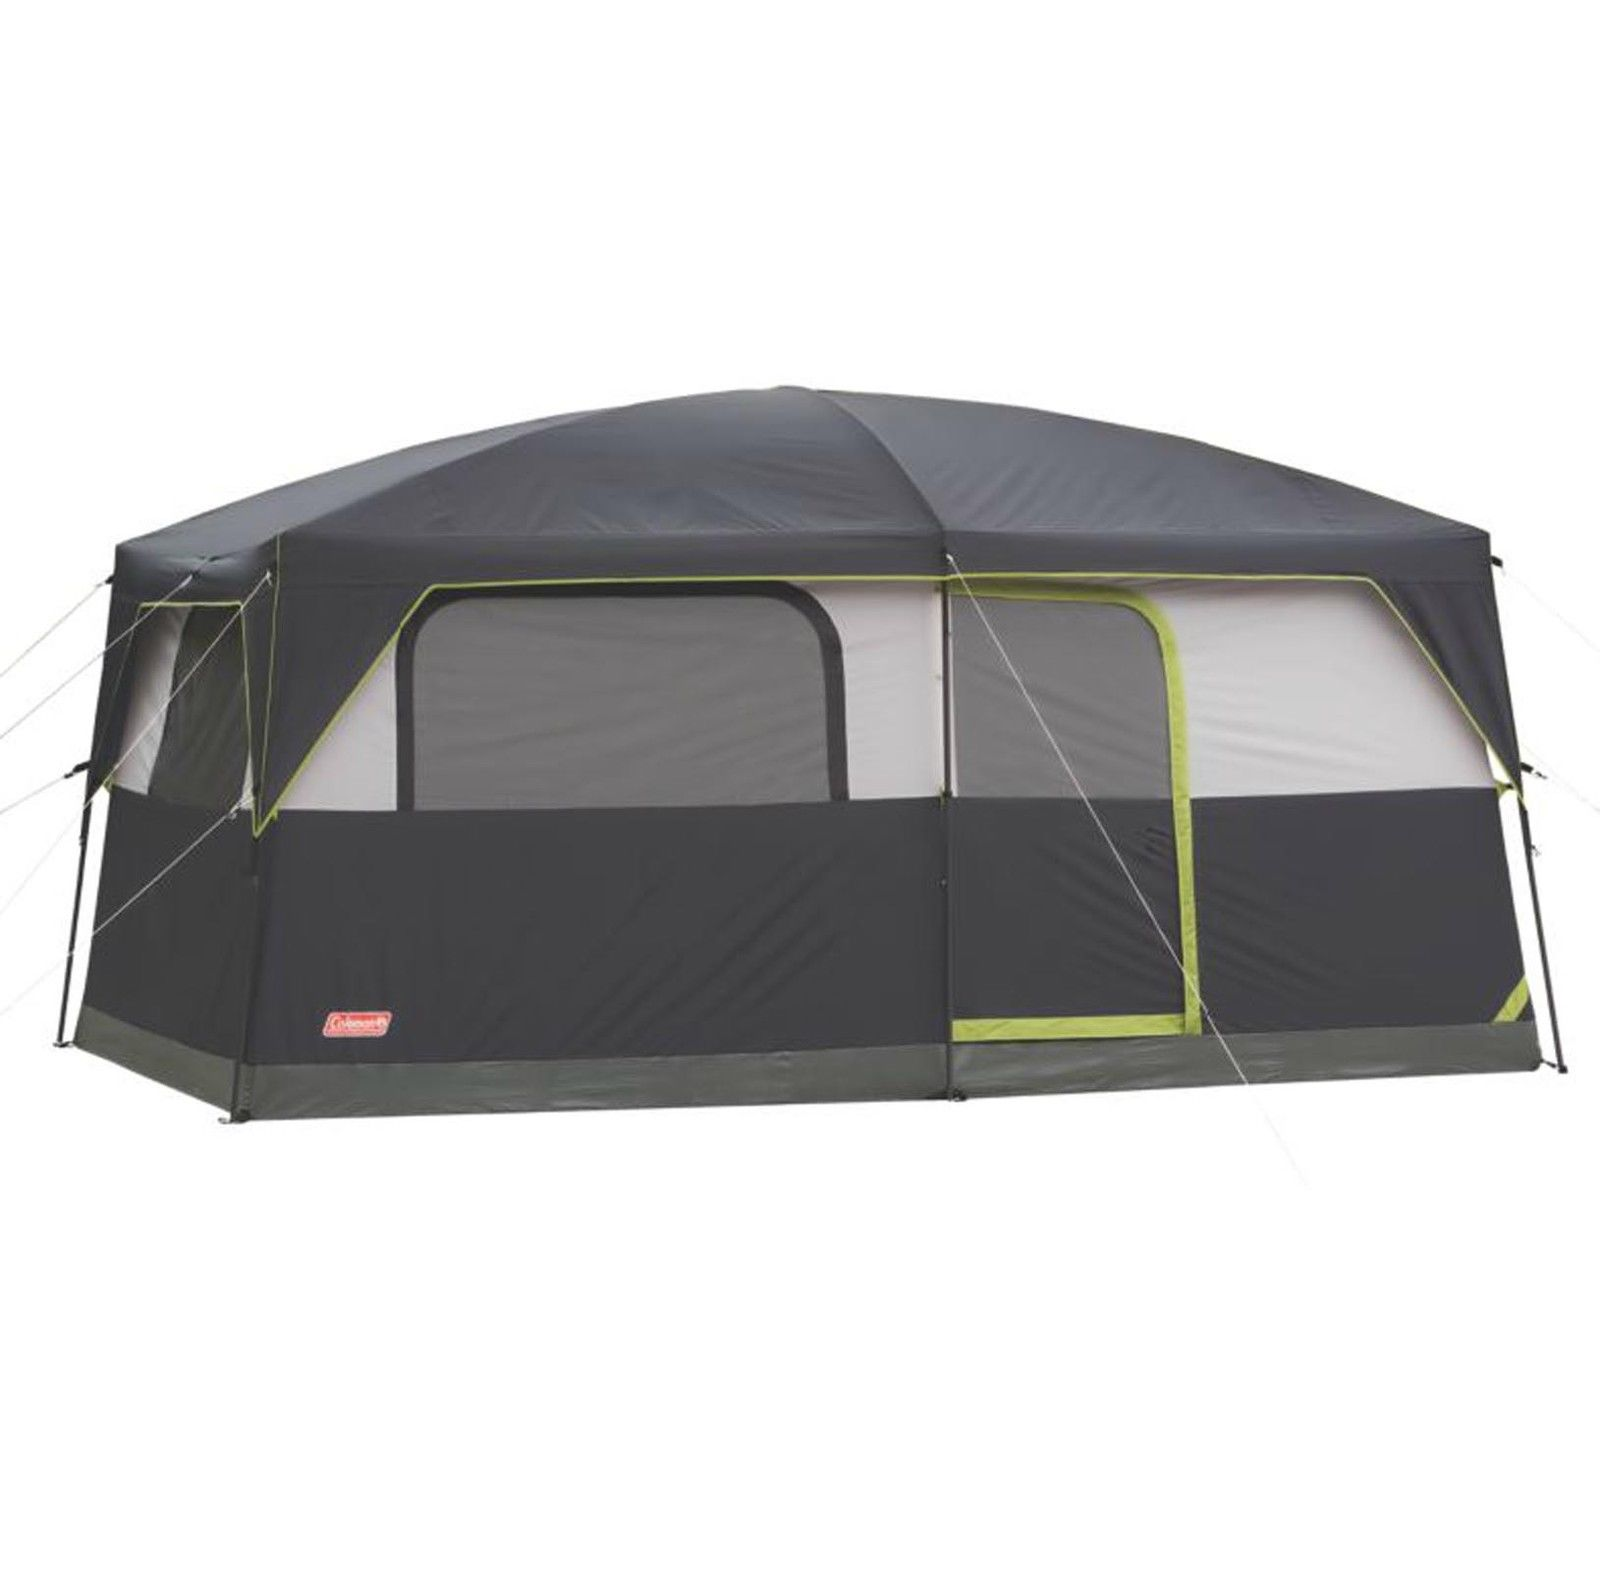 COLEMAN Prairie Breeze 9 Person WeatherTec Camping Tent